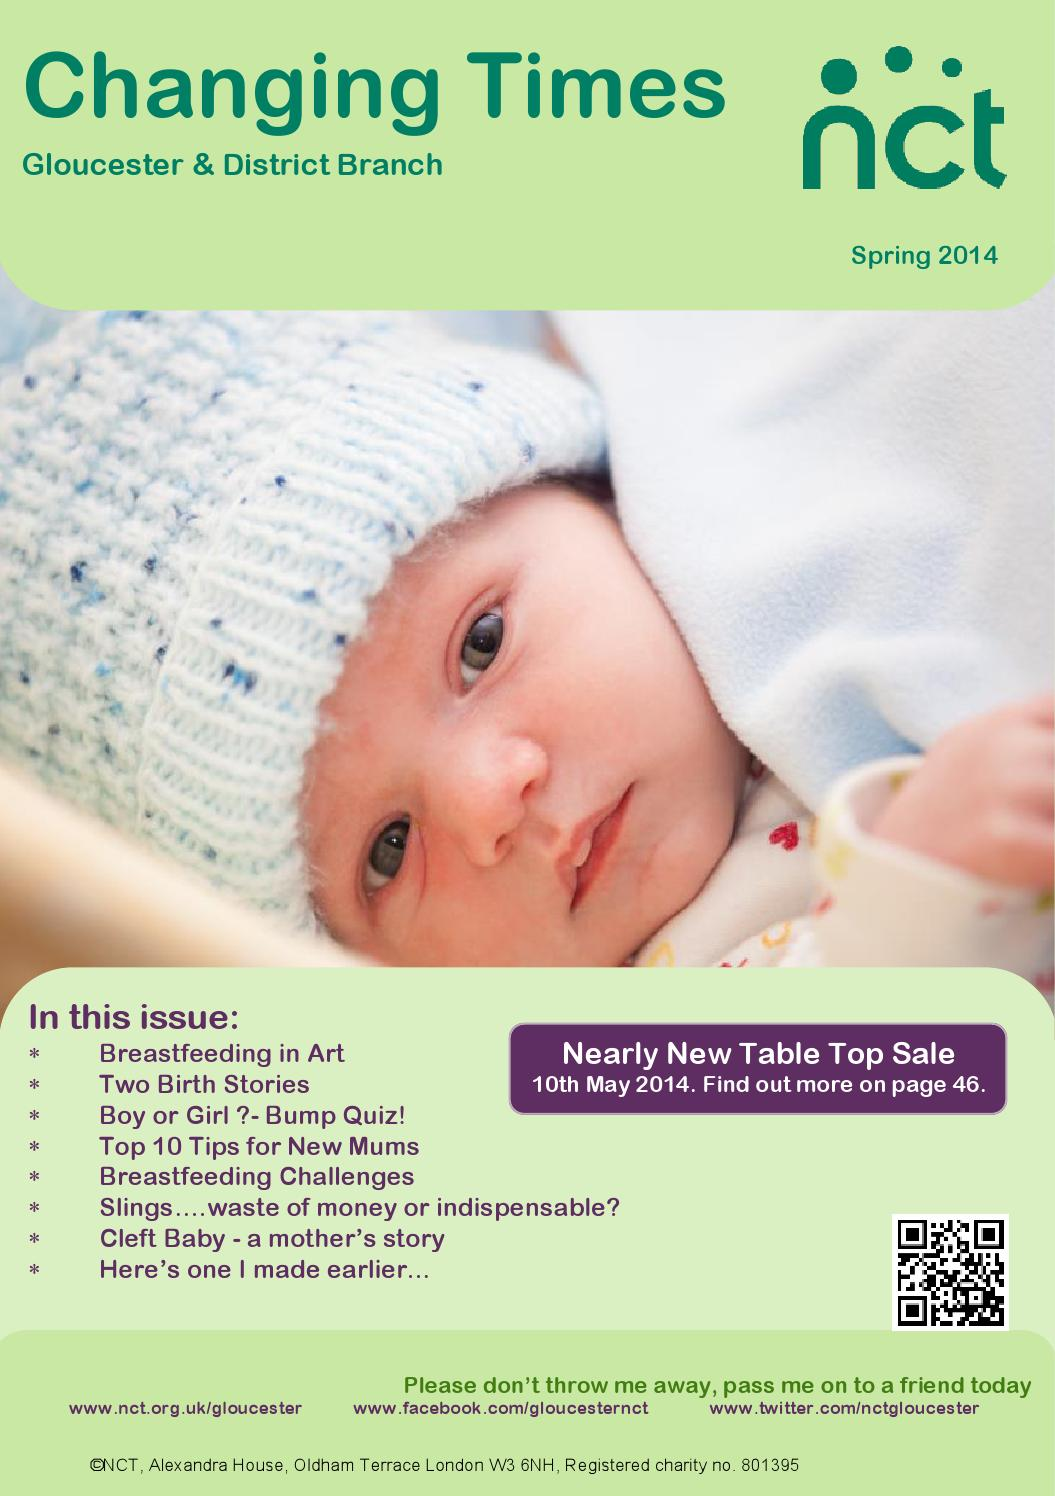 NCT Gloucester - Changing Times - Spring 2014 by Tina G - issuu